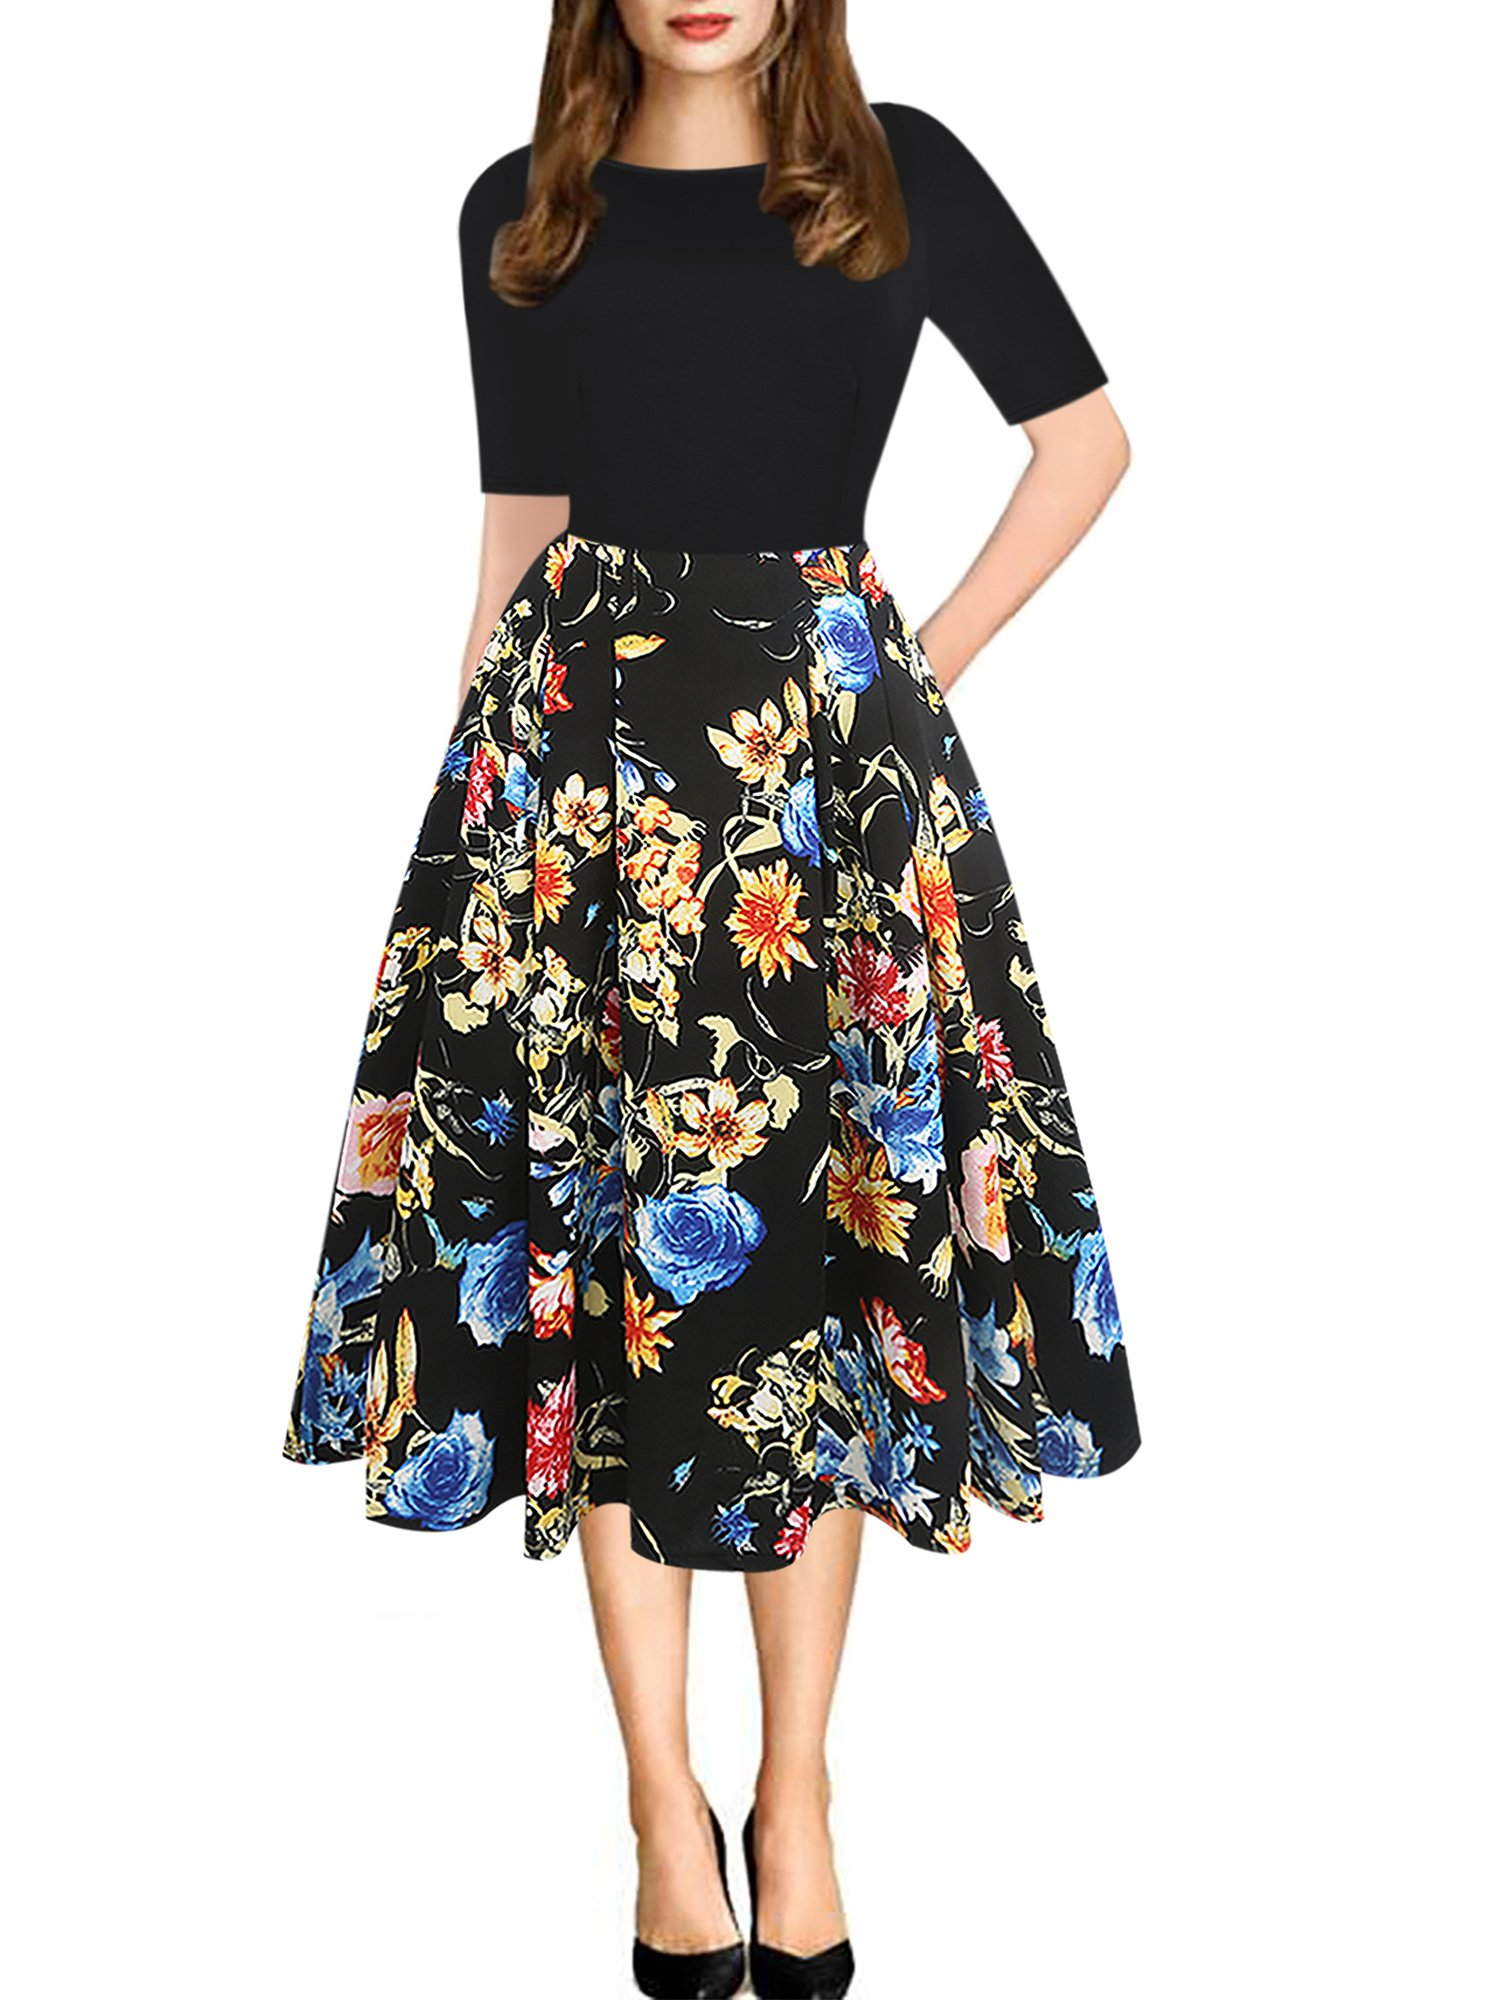 oxiuly Women's Vintage Patchwork Pockets Puffy Swing Casual Party Dress OX165 (L, Black Floral) by oxiuly